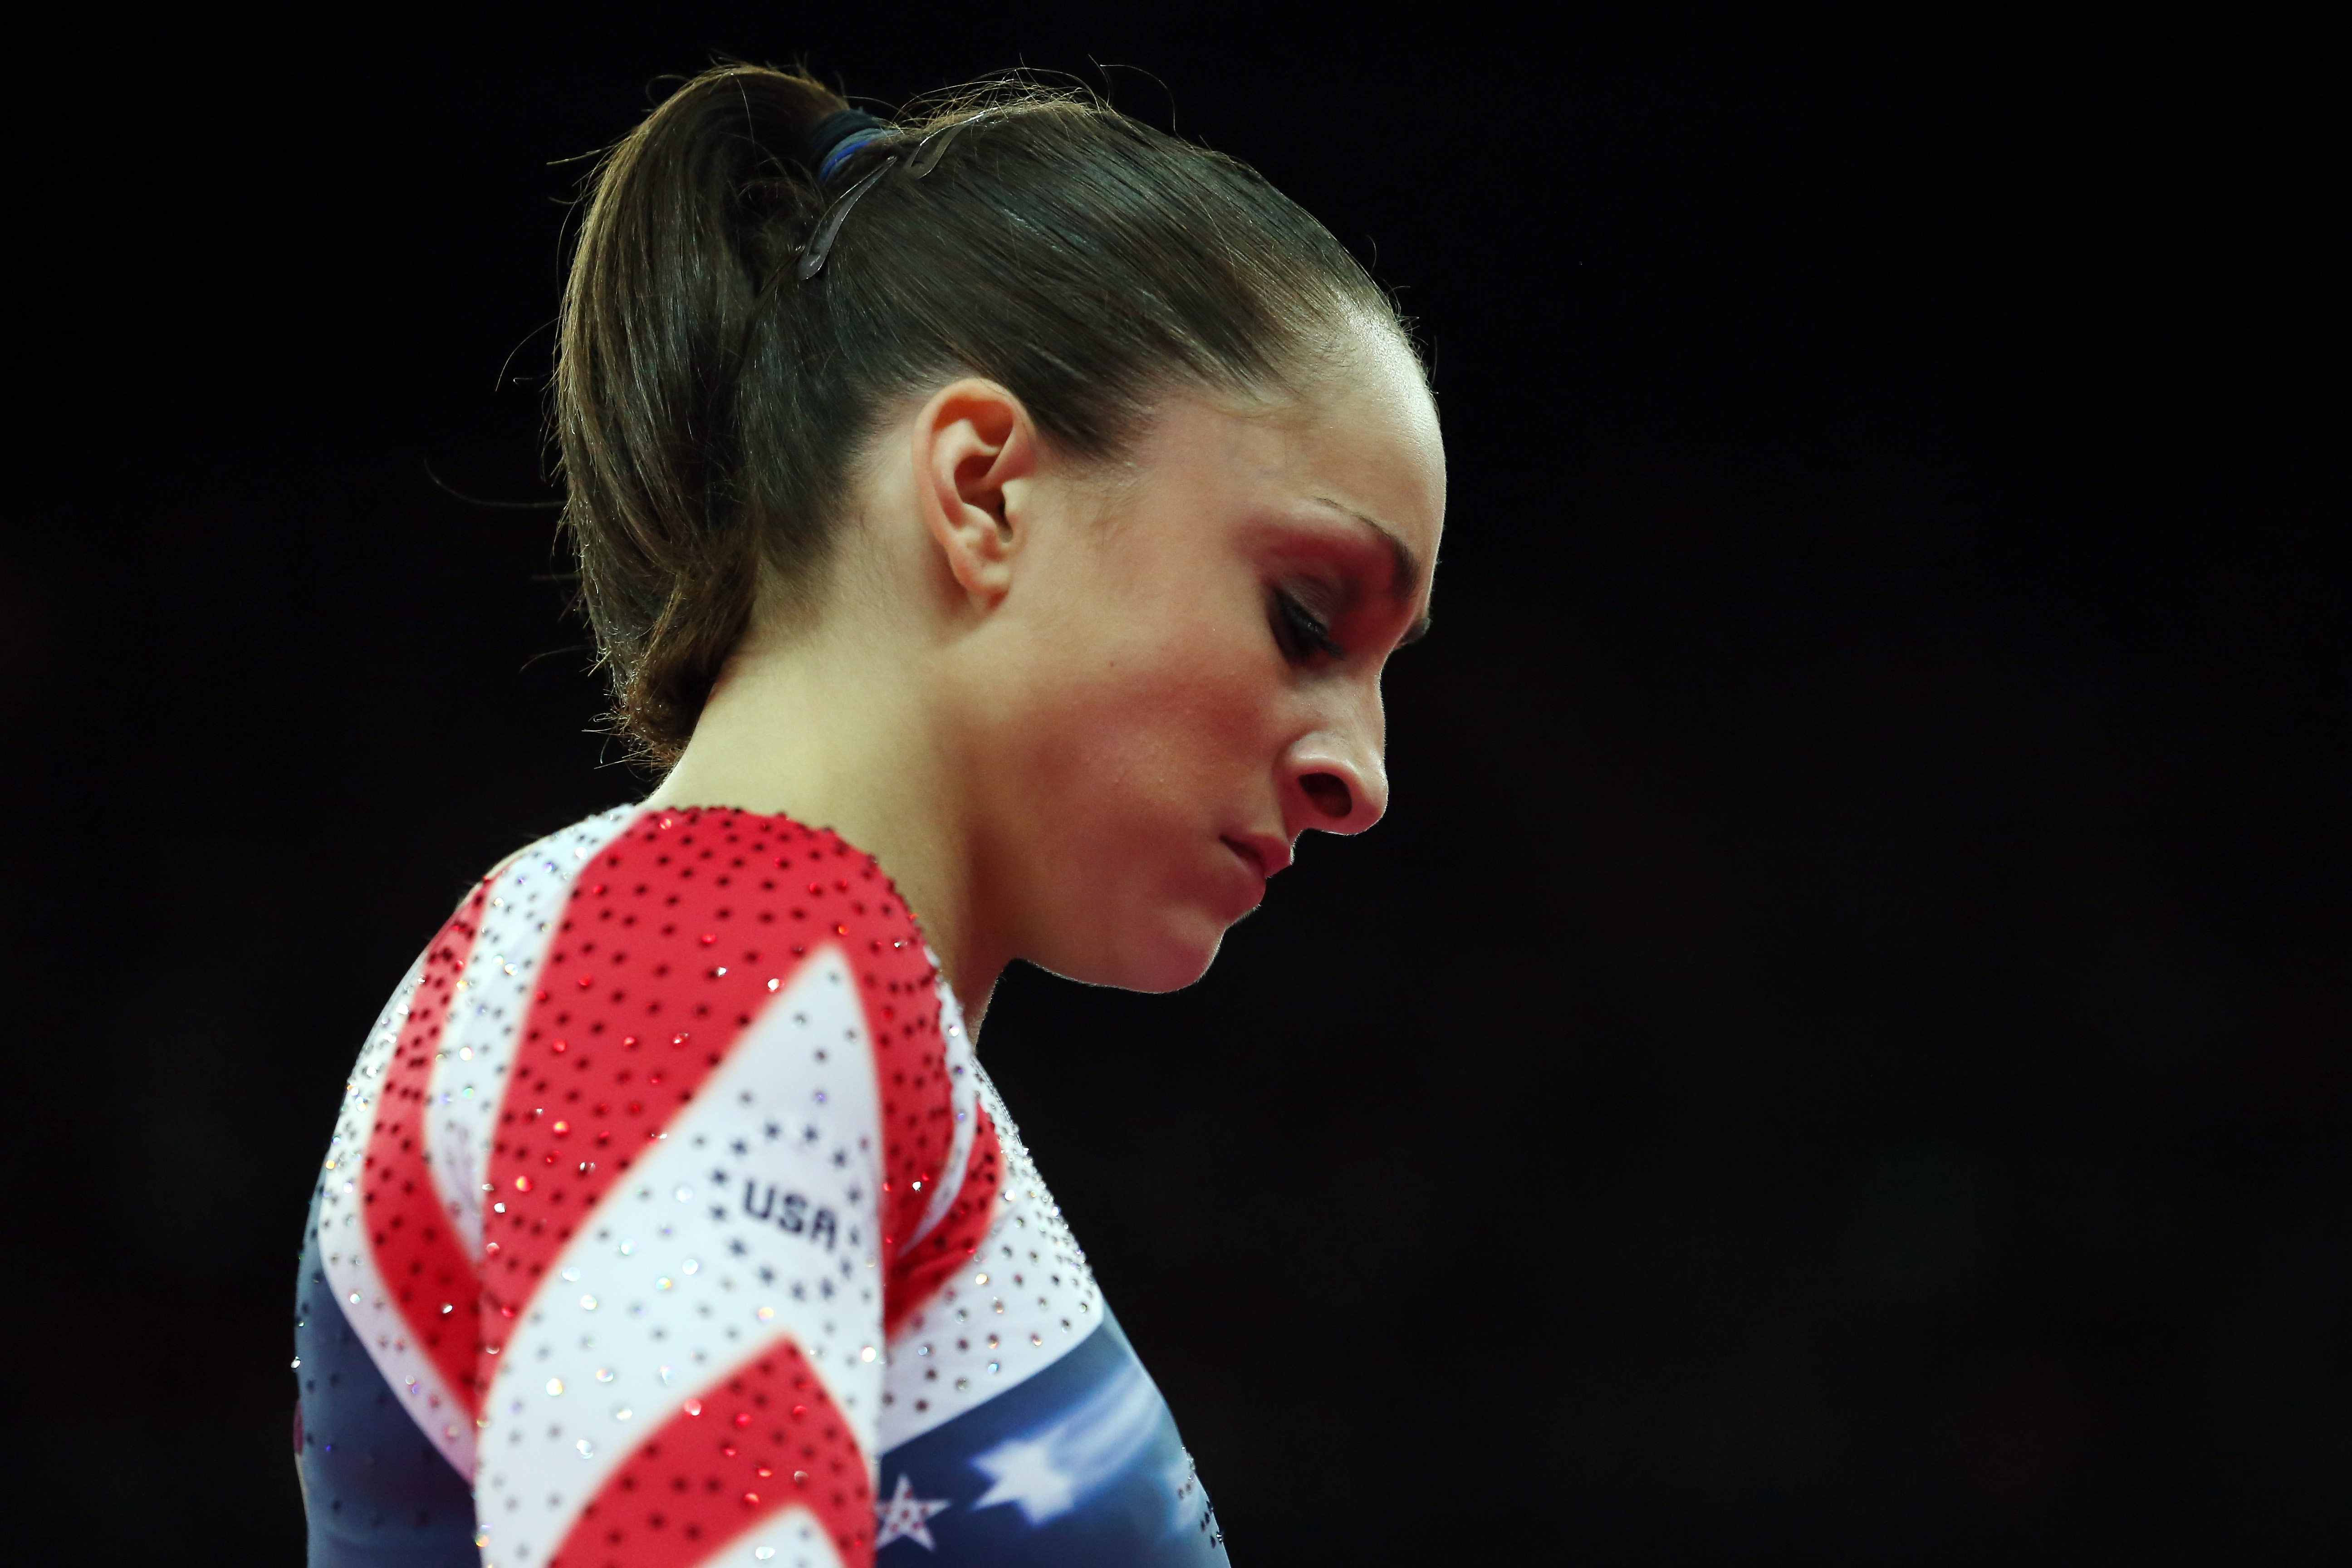 Wieber competing at the 2012 Olympic Games in London